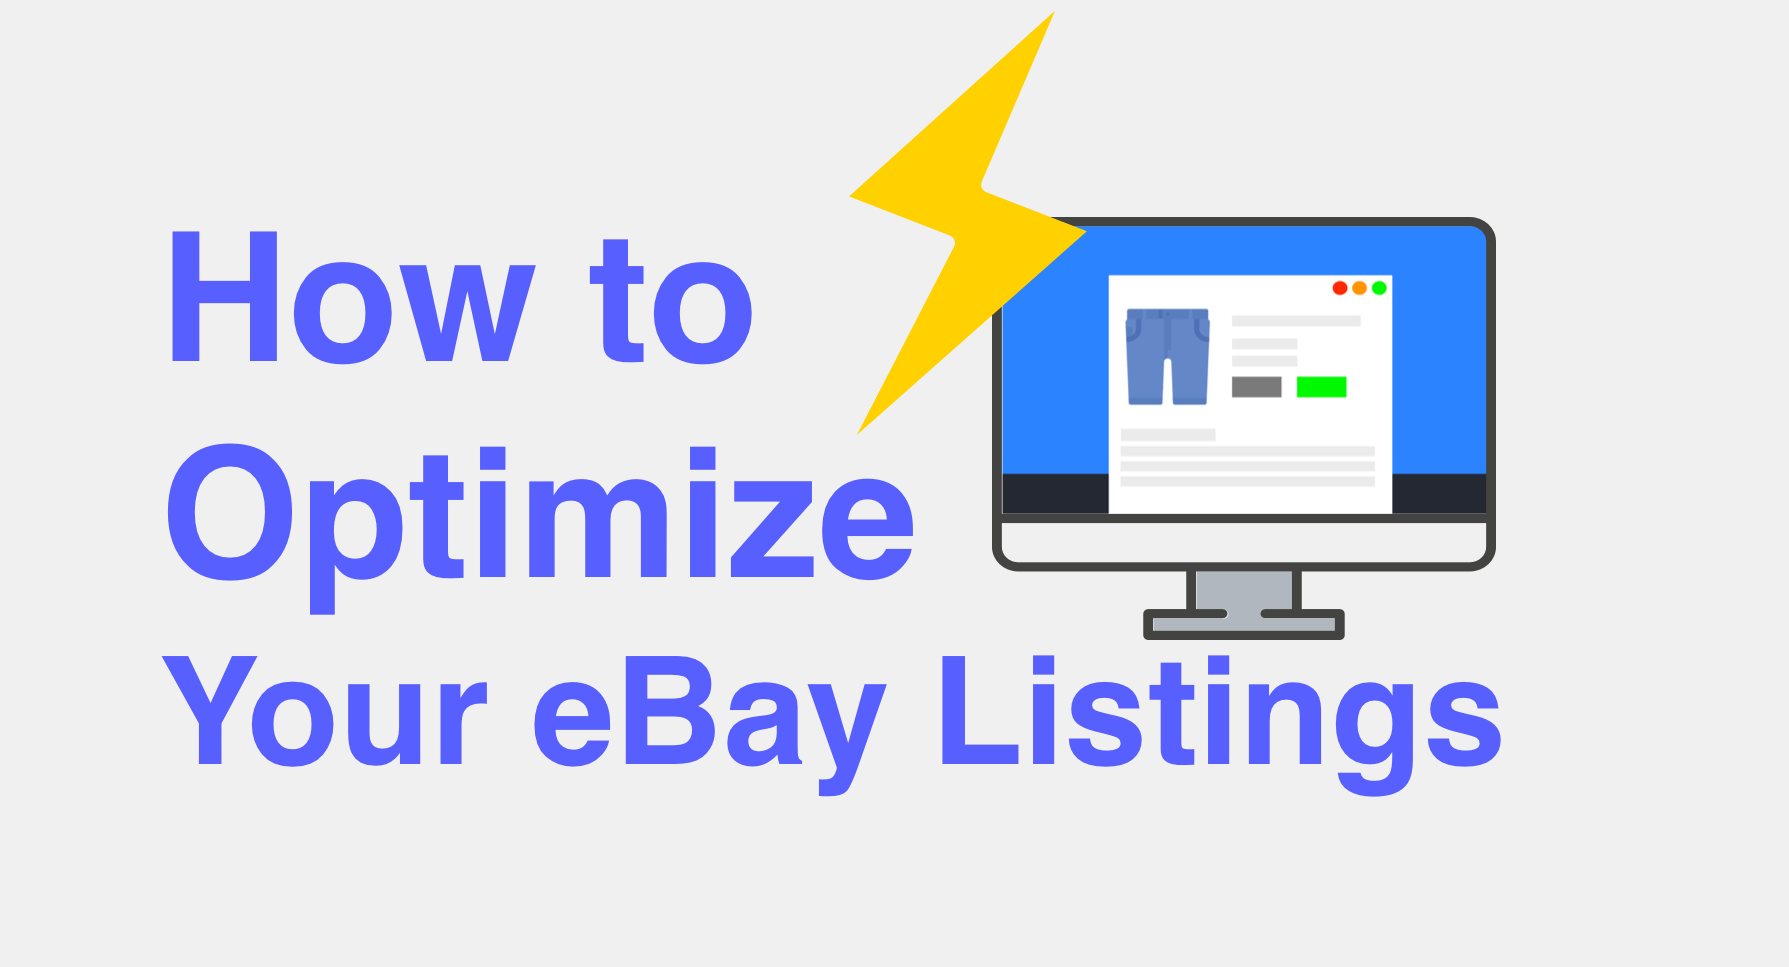 How to Optimize Your eBay Listings